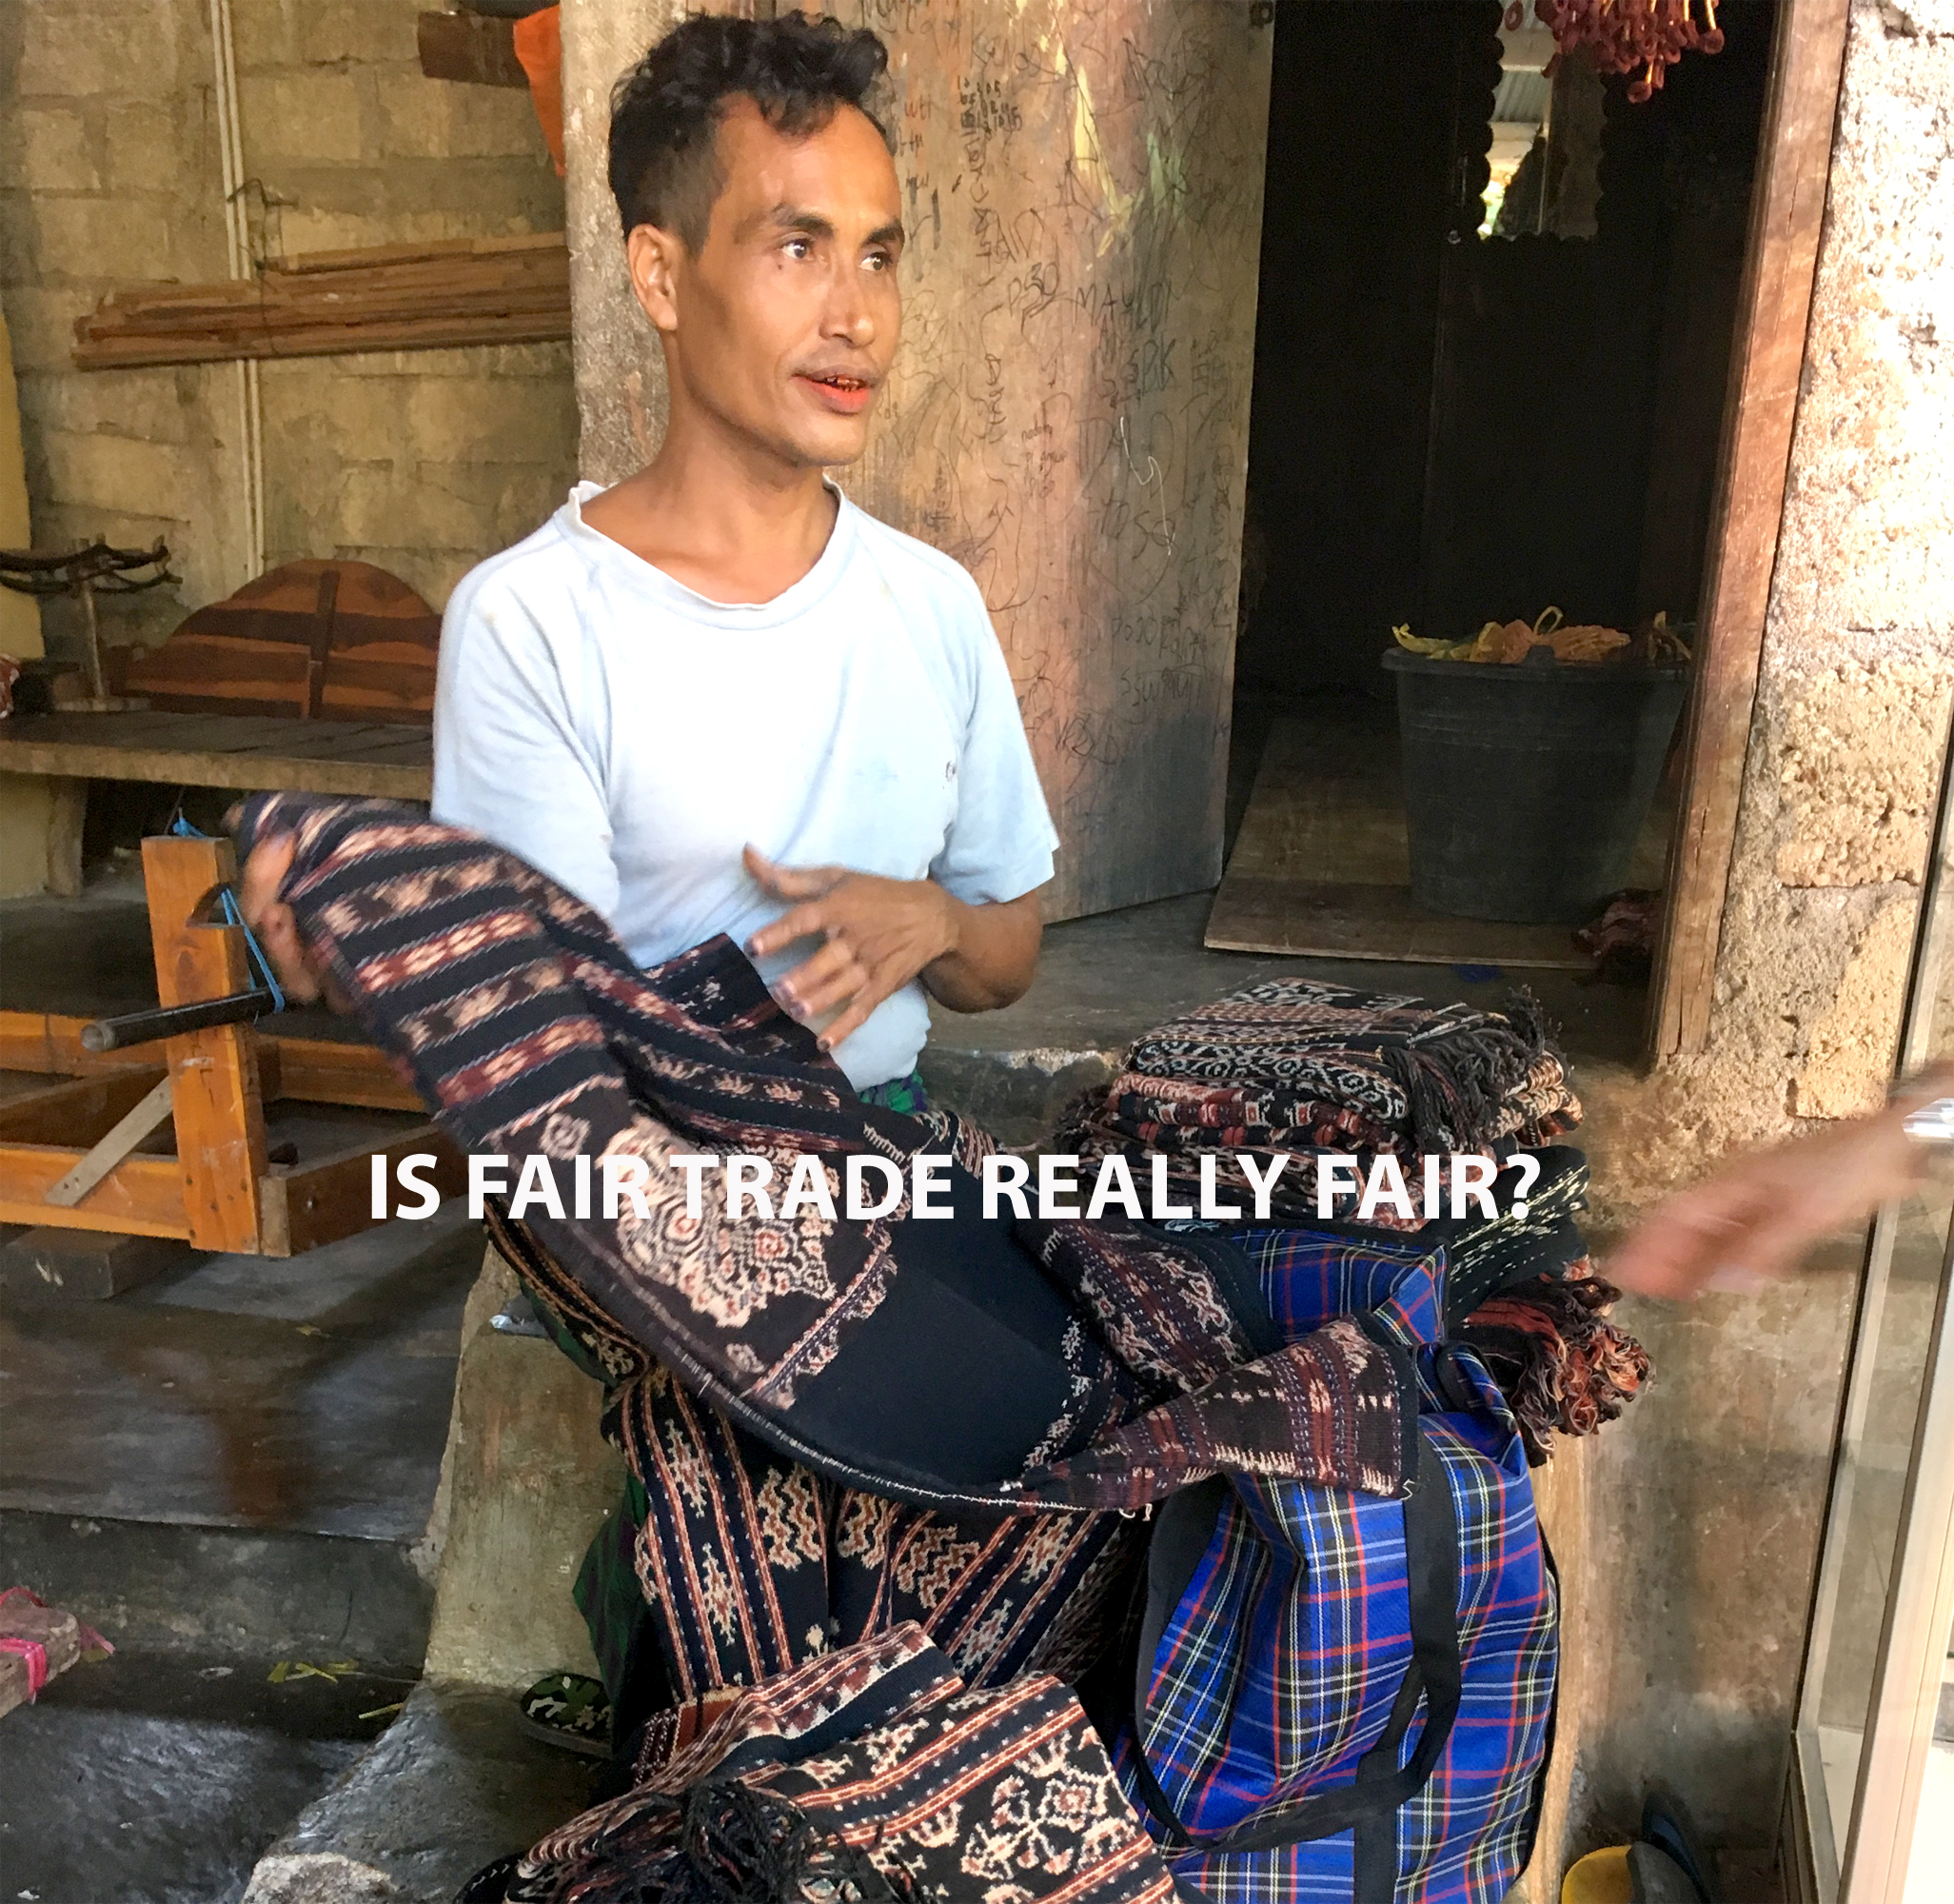 IS FAIR TRADE REALLY FAIR?